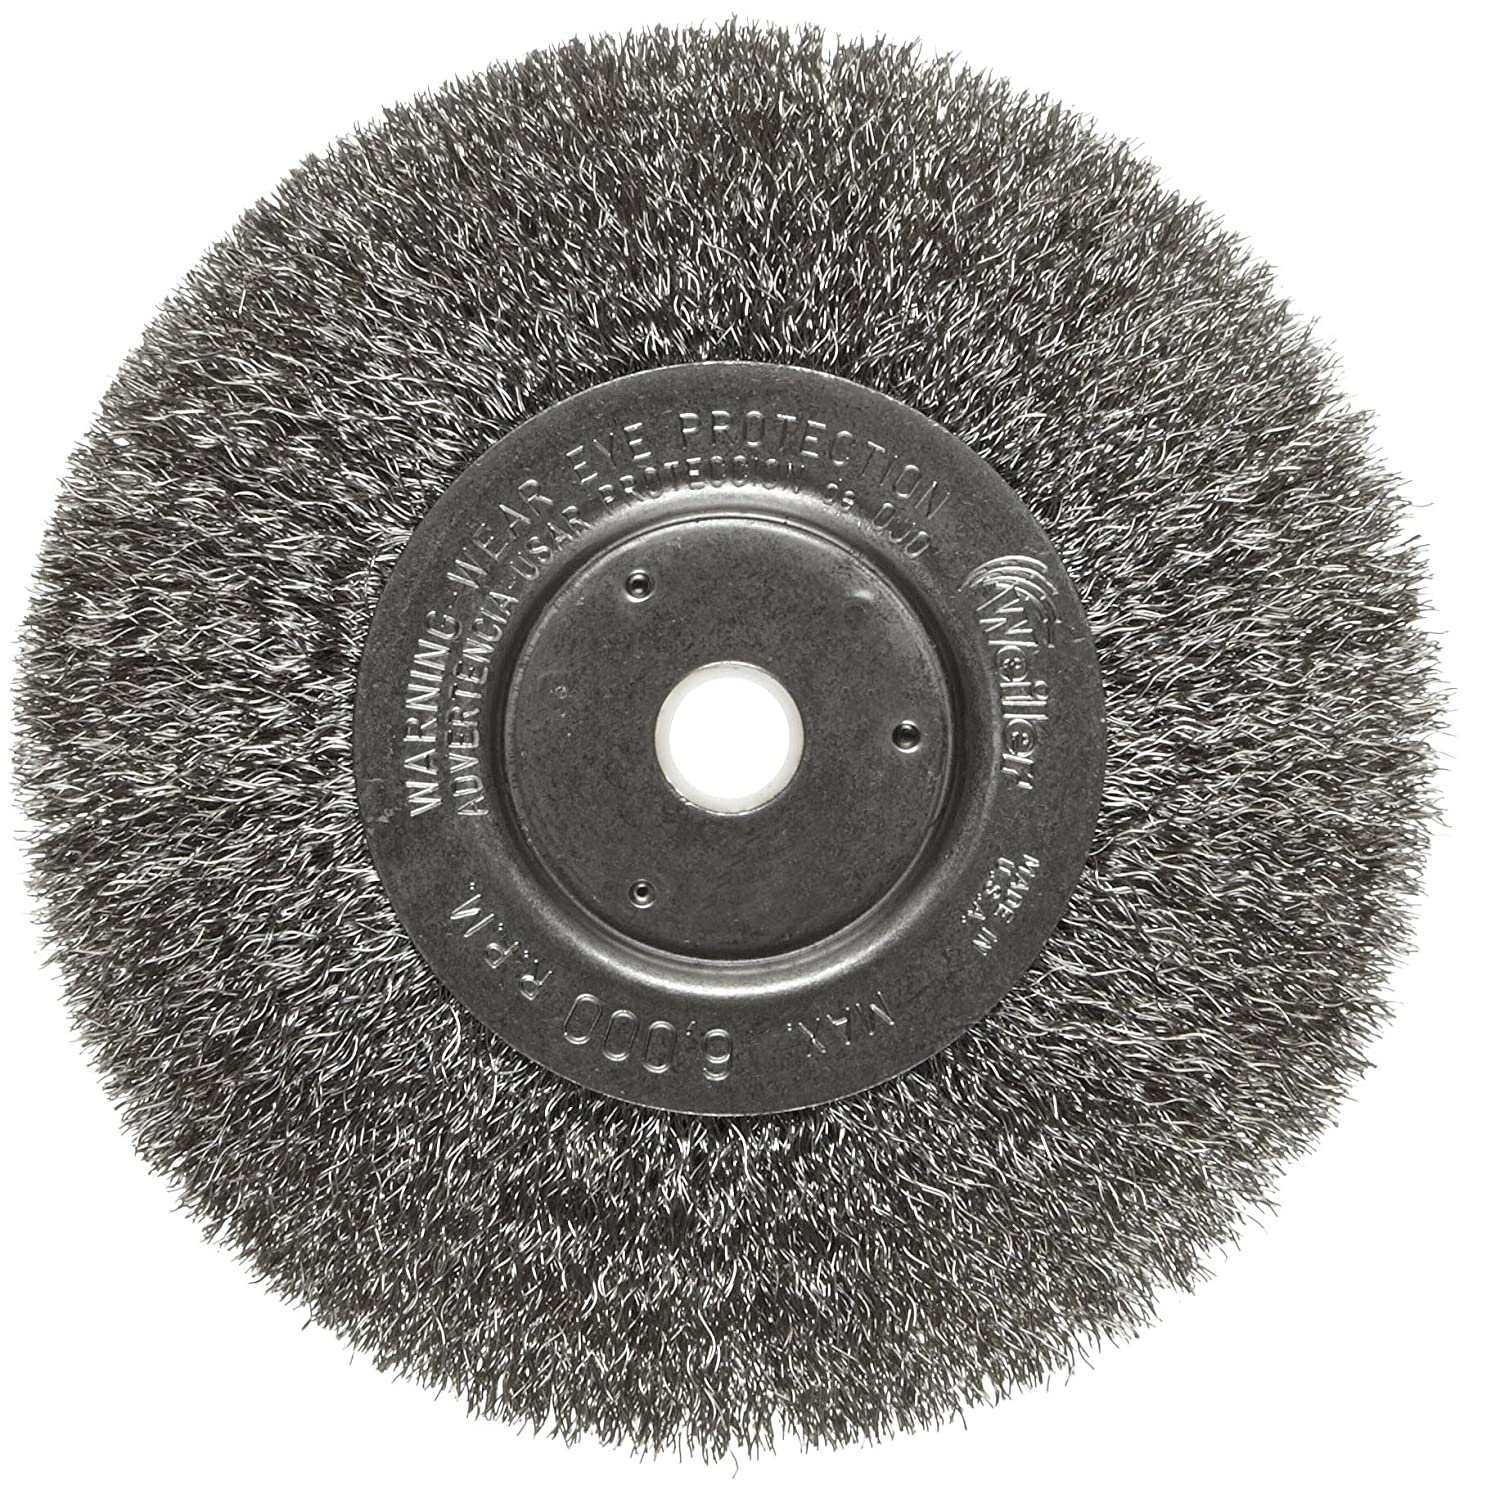 Weiler Trulock Narrow Face Wire Wheel Brush, Round Hole, Stainless Steel 302, Crimped Wire, 6' Diameter, 0.0104' Wire Diameter, 5/8-1/2' Arbor, 1-7/16' Bristle Length, 3/4' Brush Face Width, 6000 rpm